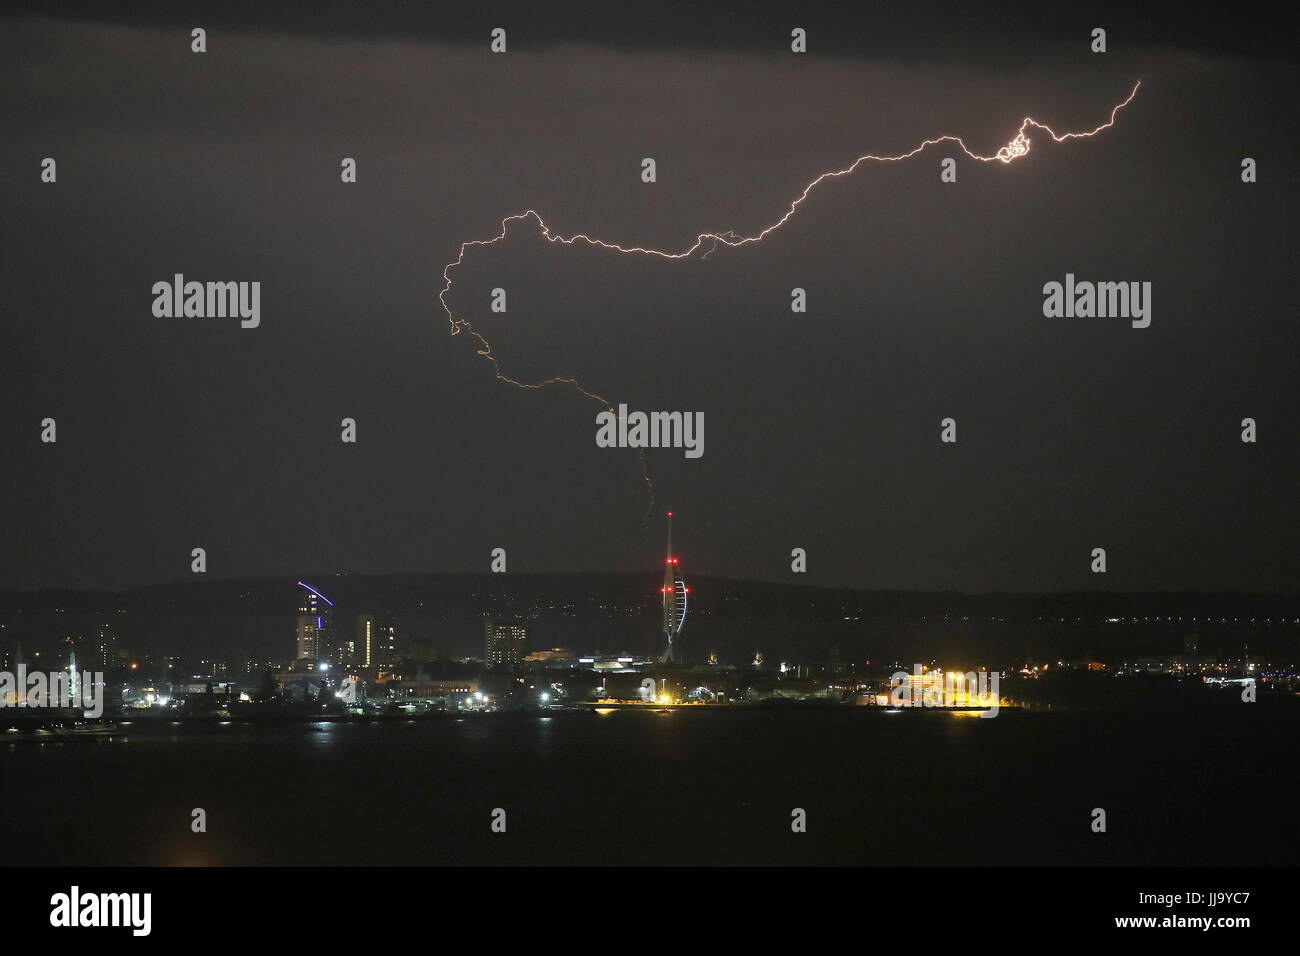 A lightning bolt over the Spinnaker Tower, Portsmouth. Stock Photo